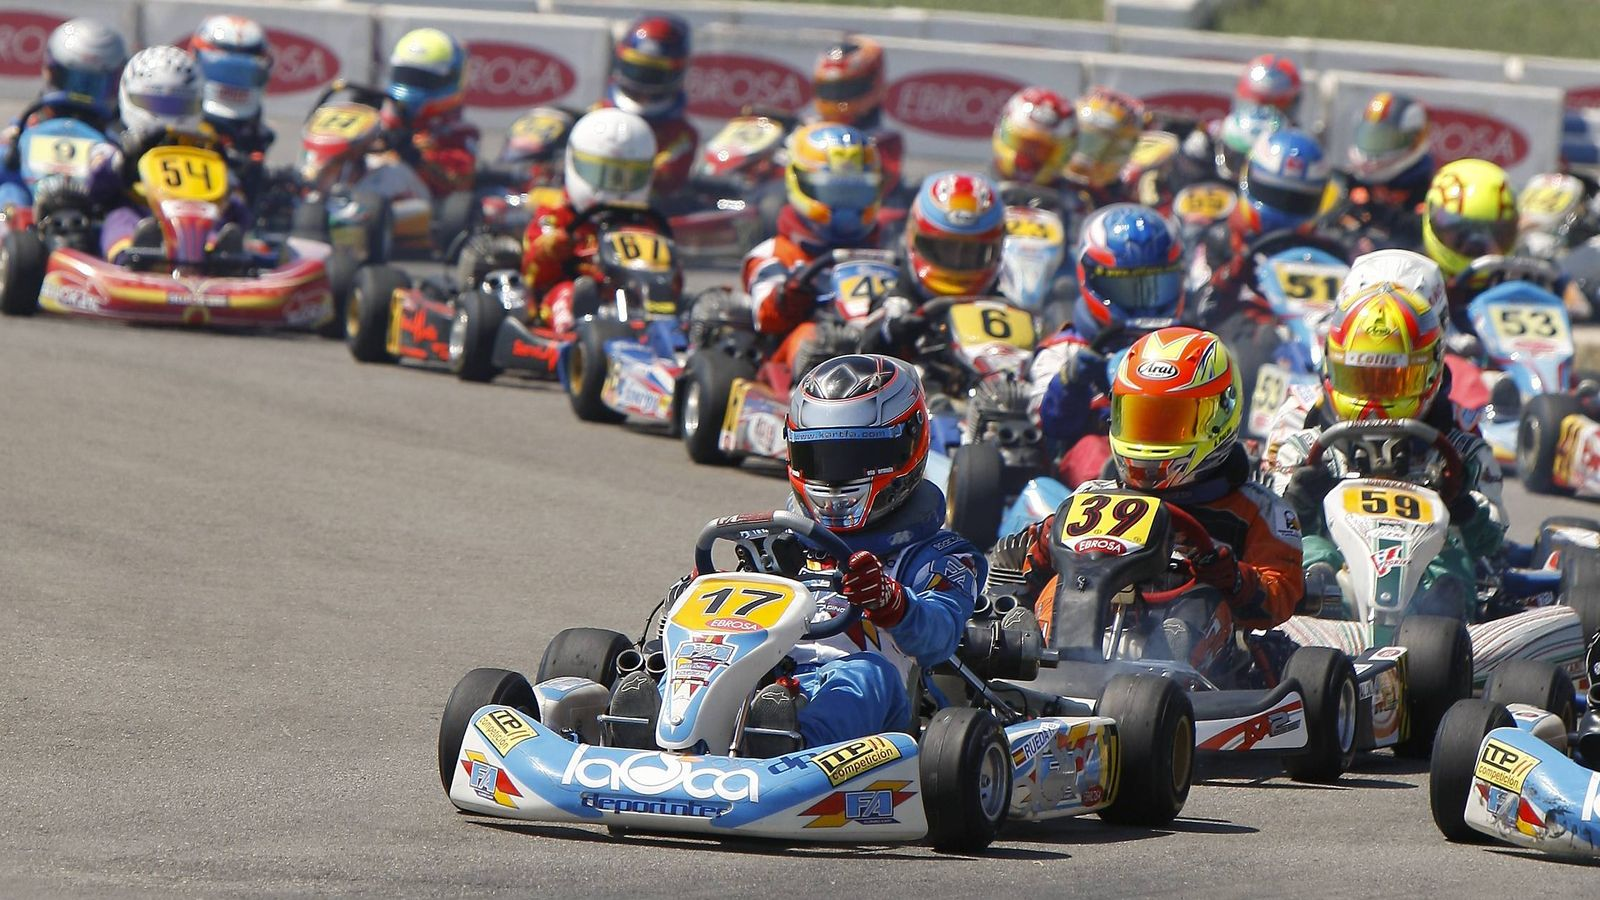 Circuito Fernando Alonso Oviedo : The world s best photos of circuito and karts flickr hive mind